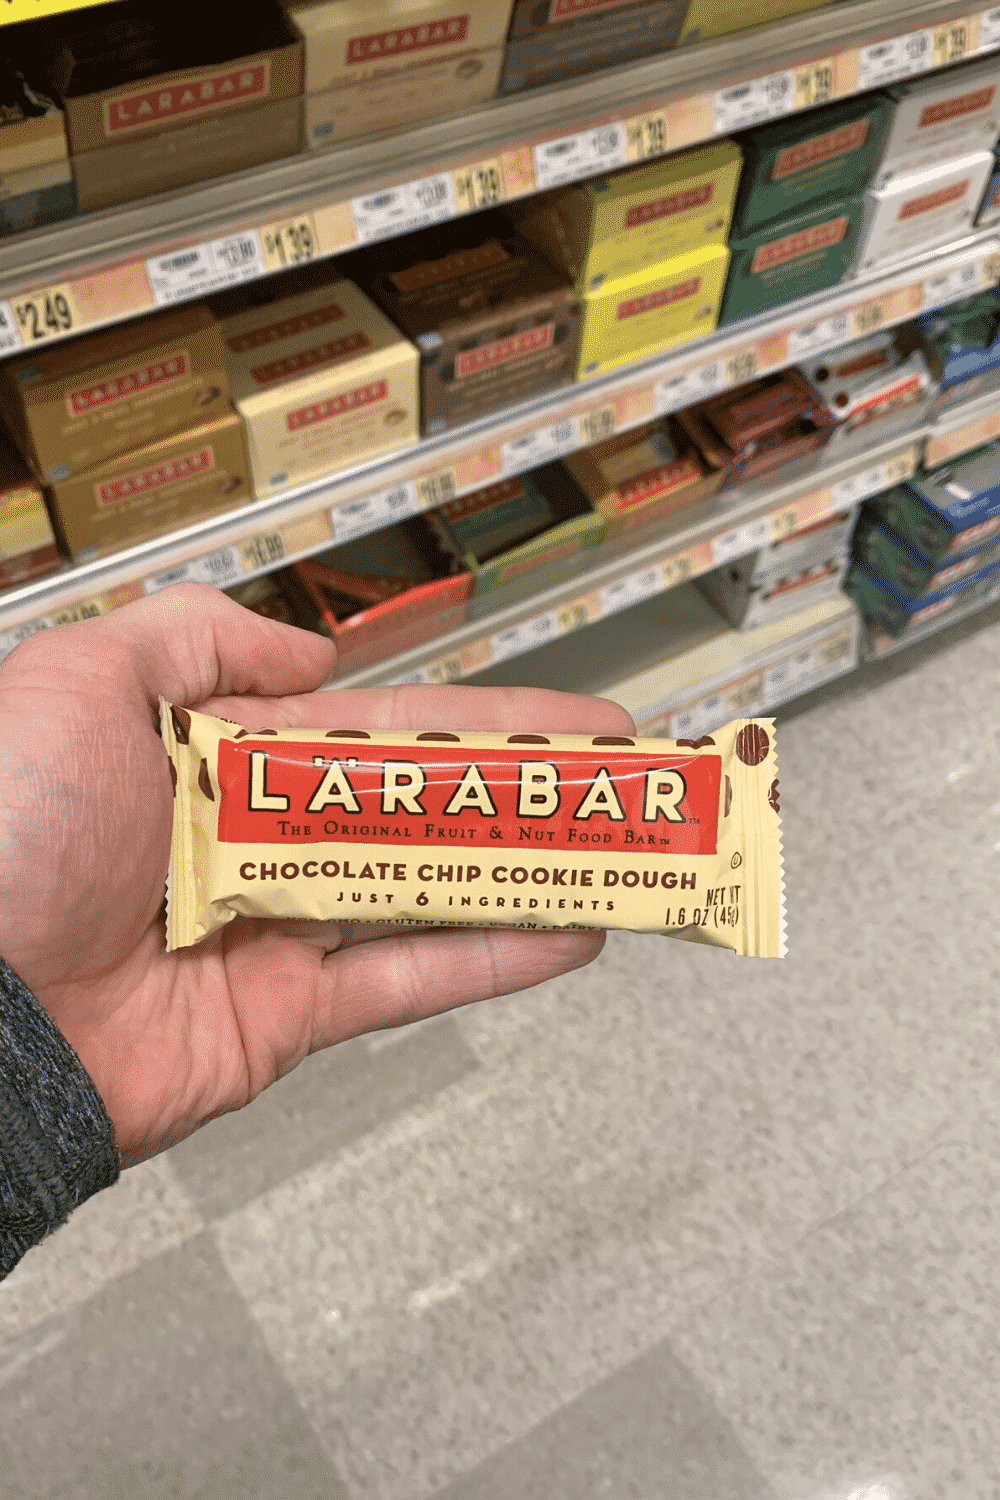 A hand holding a wrapped chocolate chip cookie dough larabar.